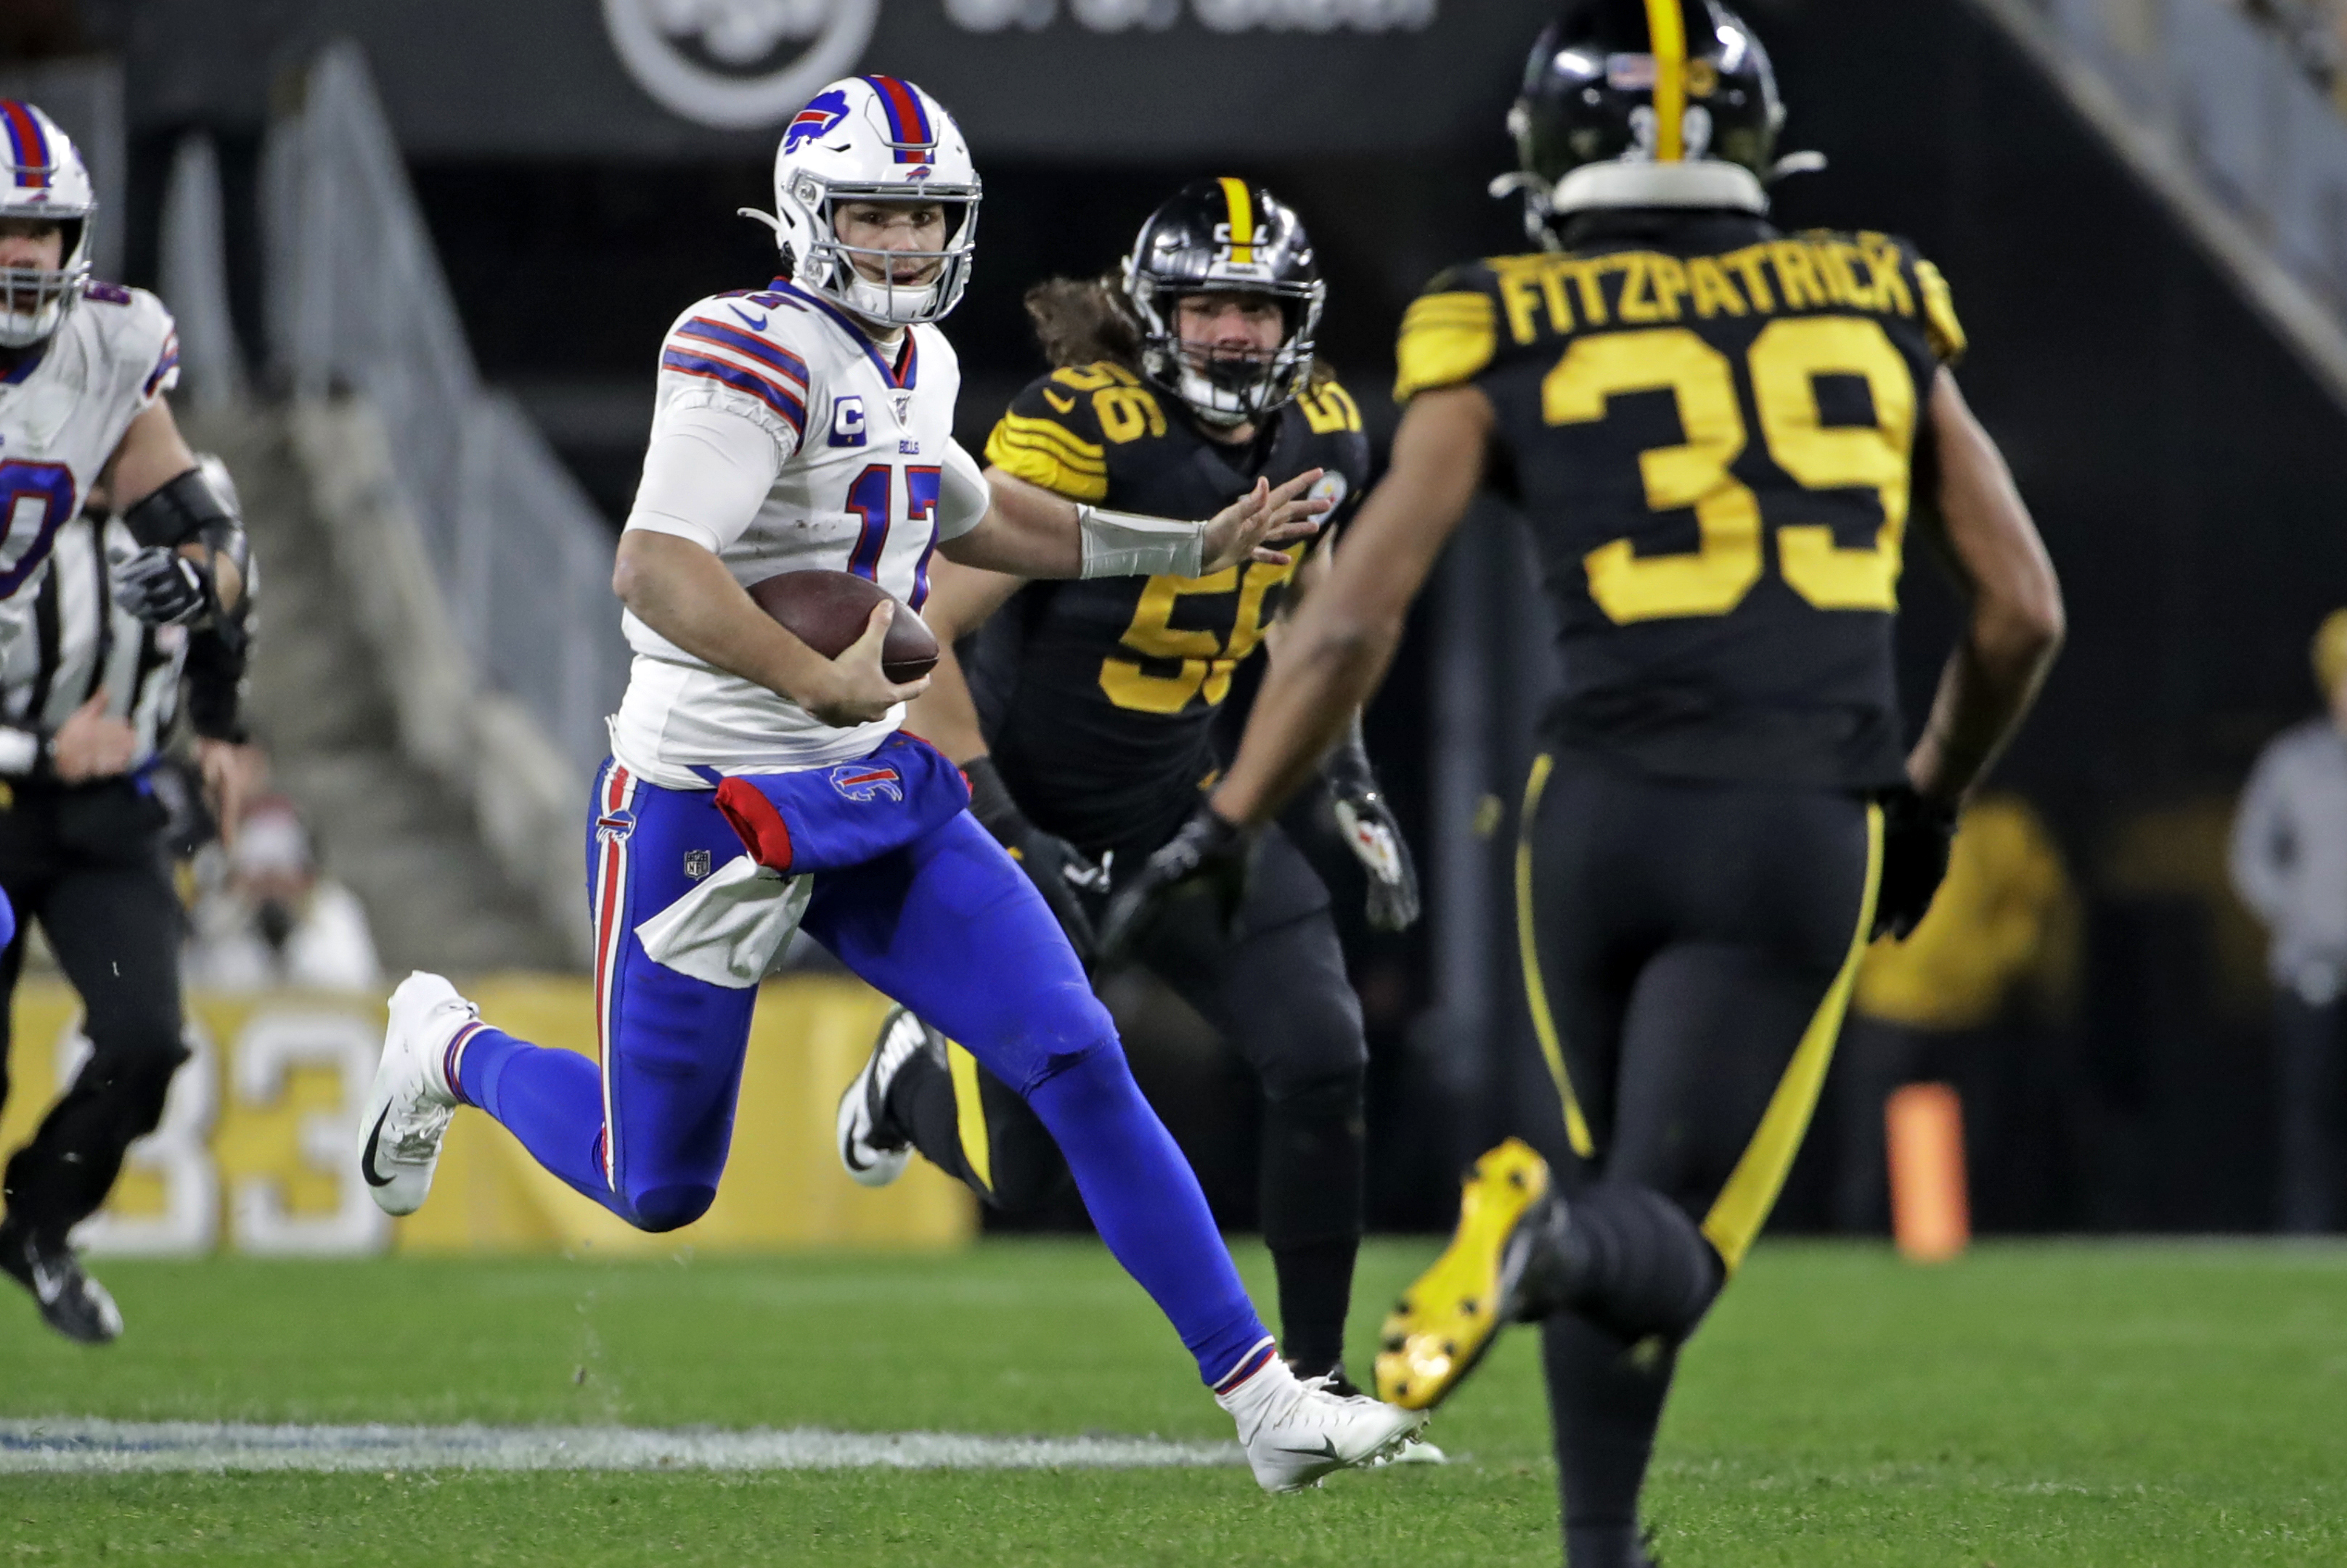 Buffalo Bills topple Pittsburgh Steelers 17-10 to clinch a playoff spot